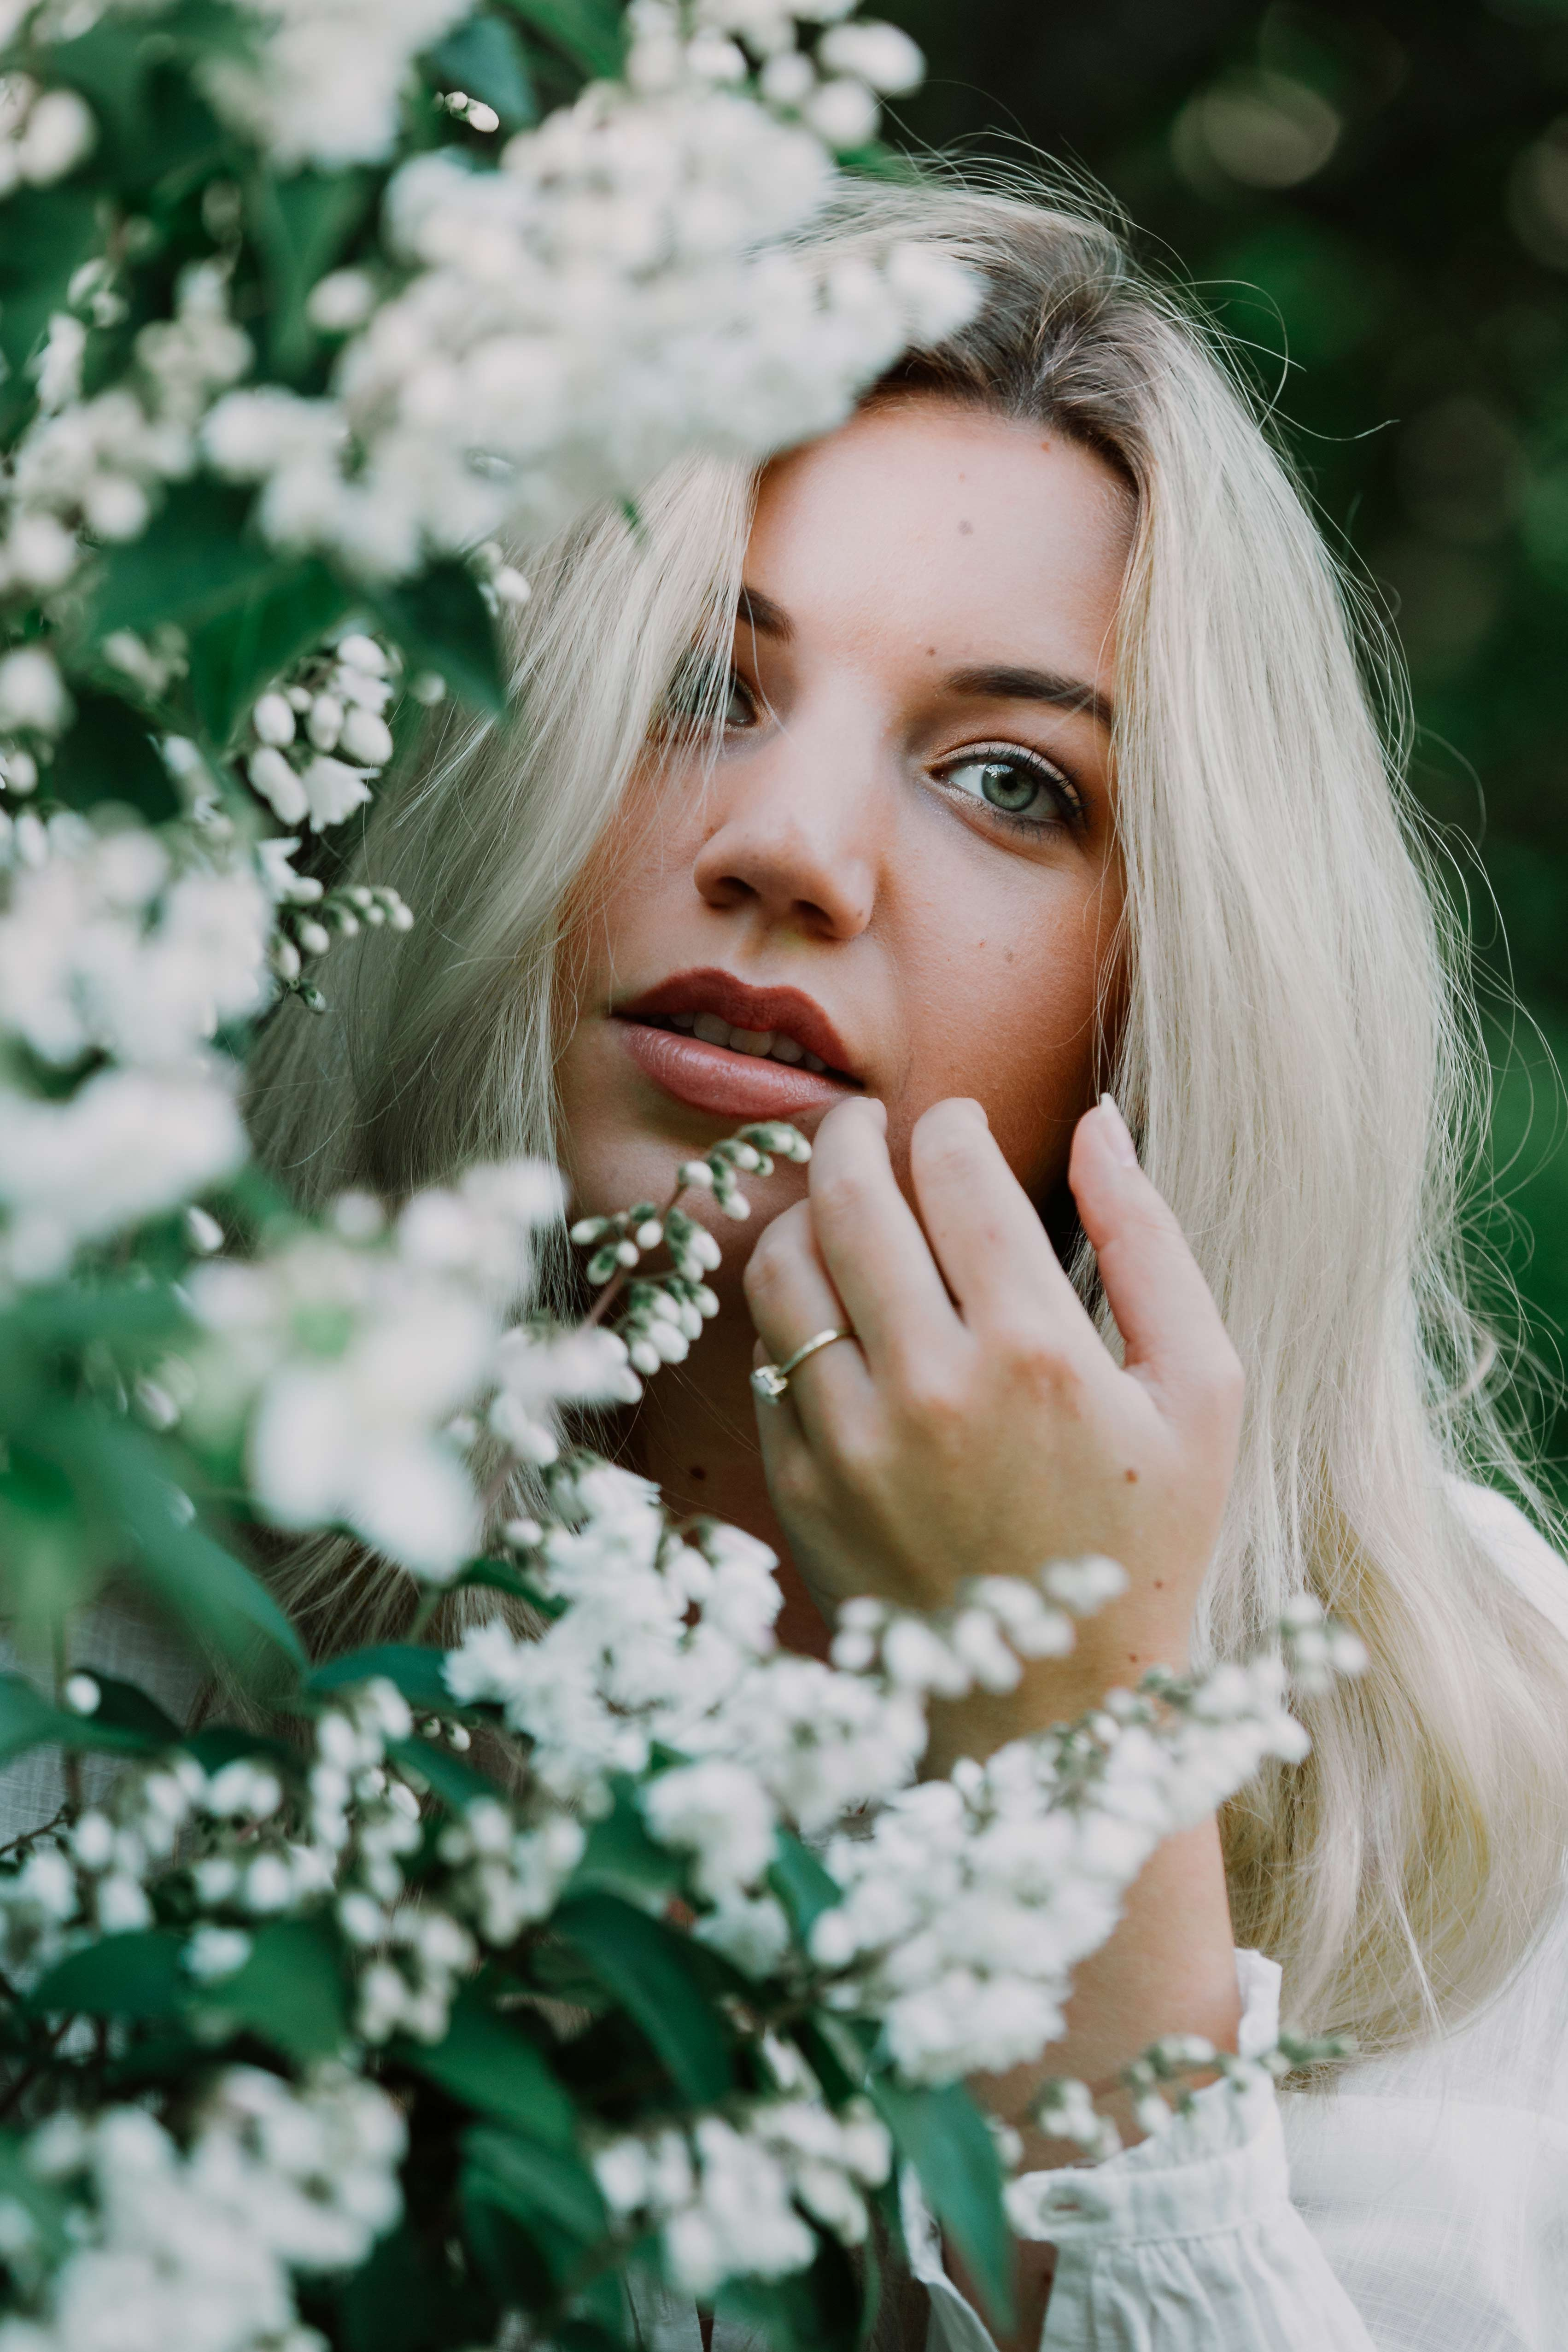 selective focus photography of woman beside white flowers